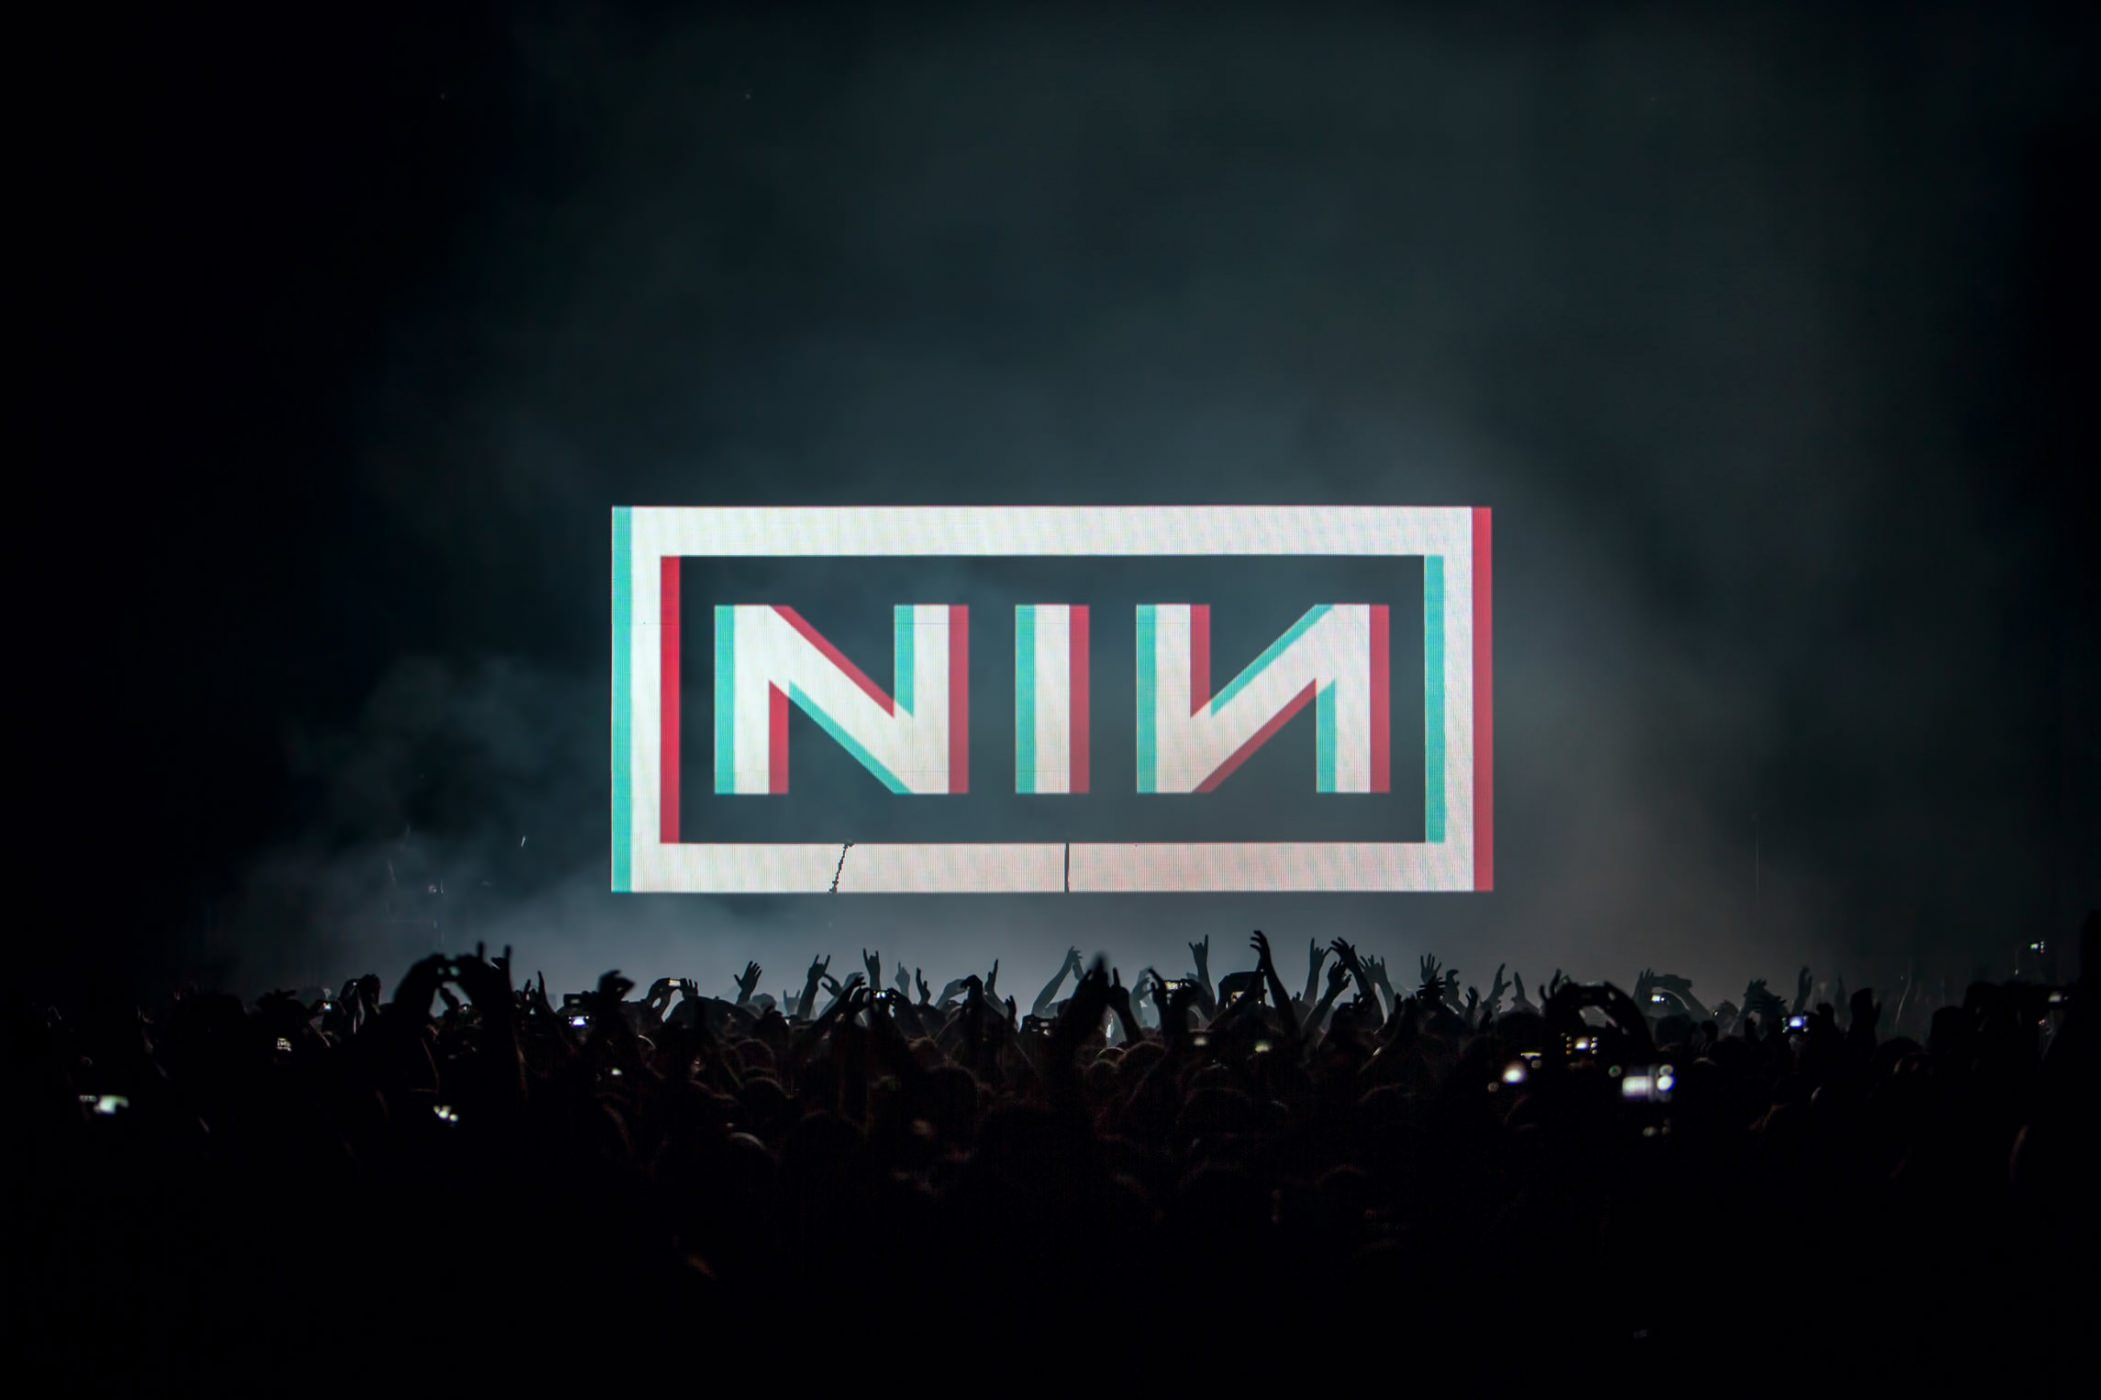 Tension Tour in Arenas, Nine Inch Nails | Moment Factory